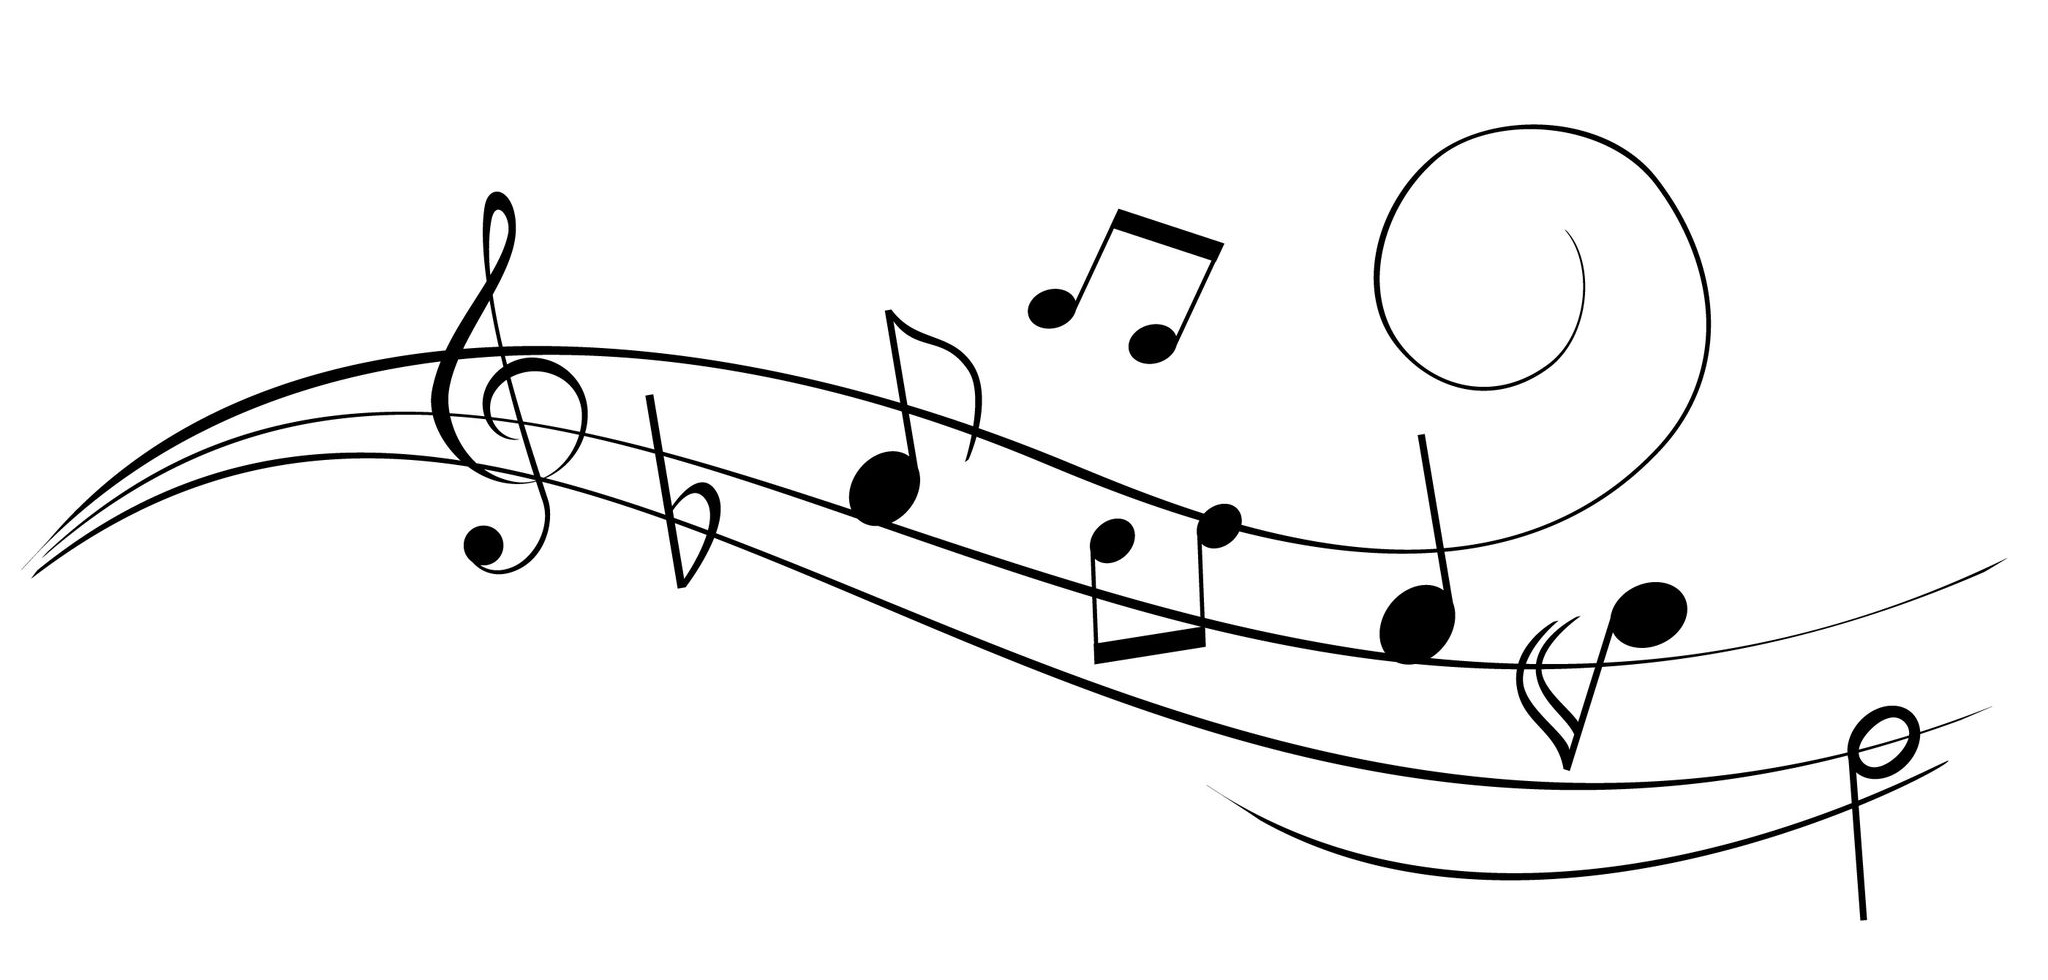 » music-notes-1